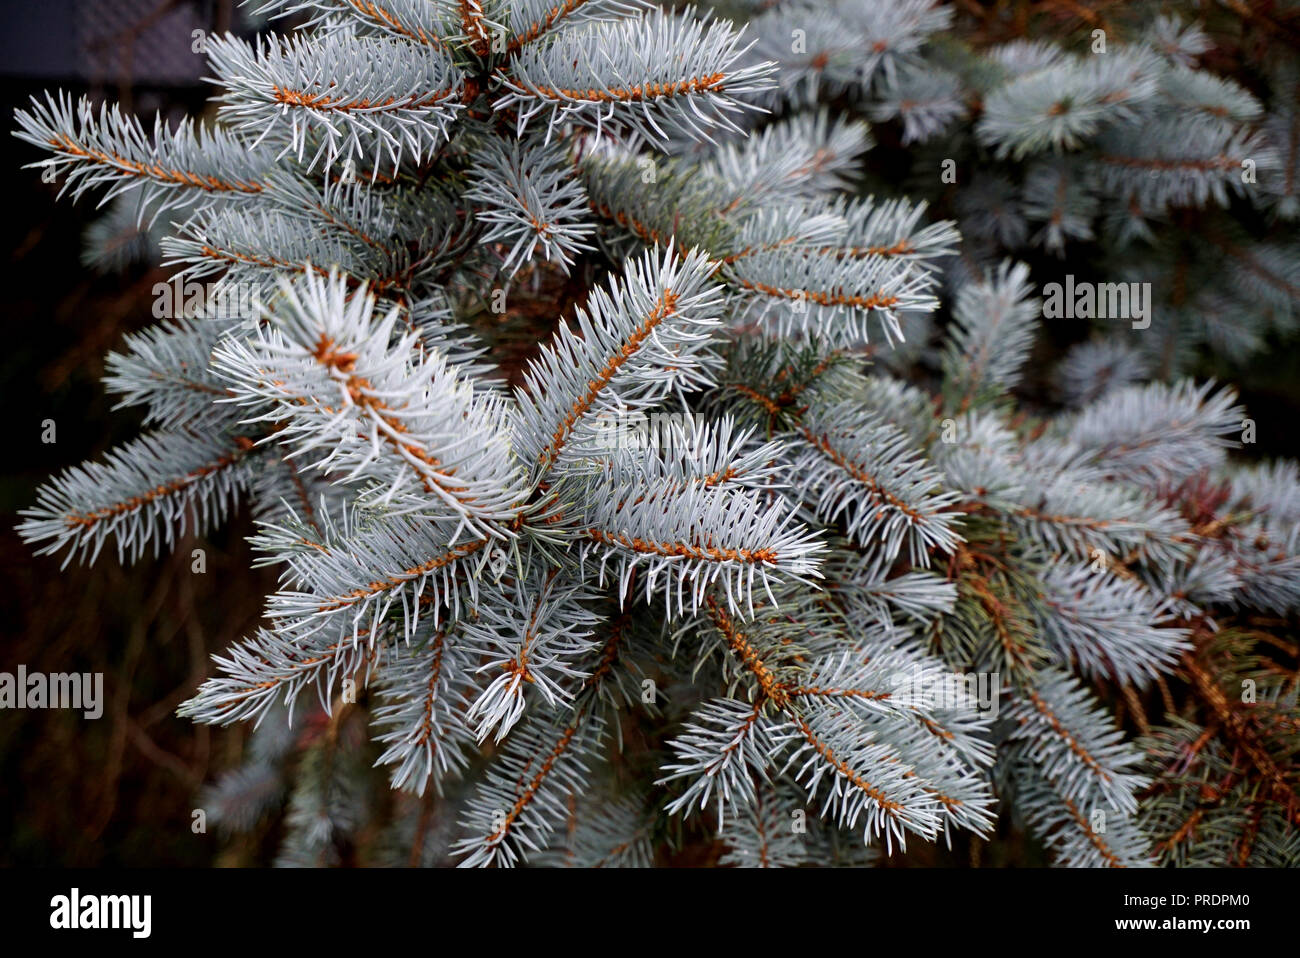 blue spruce close up background textures christmas tree branches white spruce needles in focus closeup